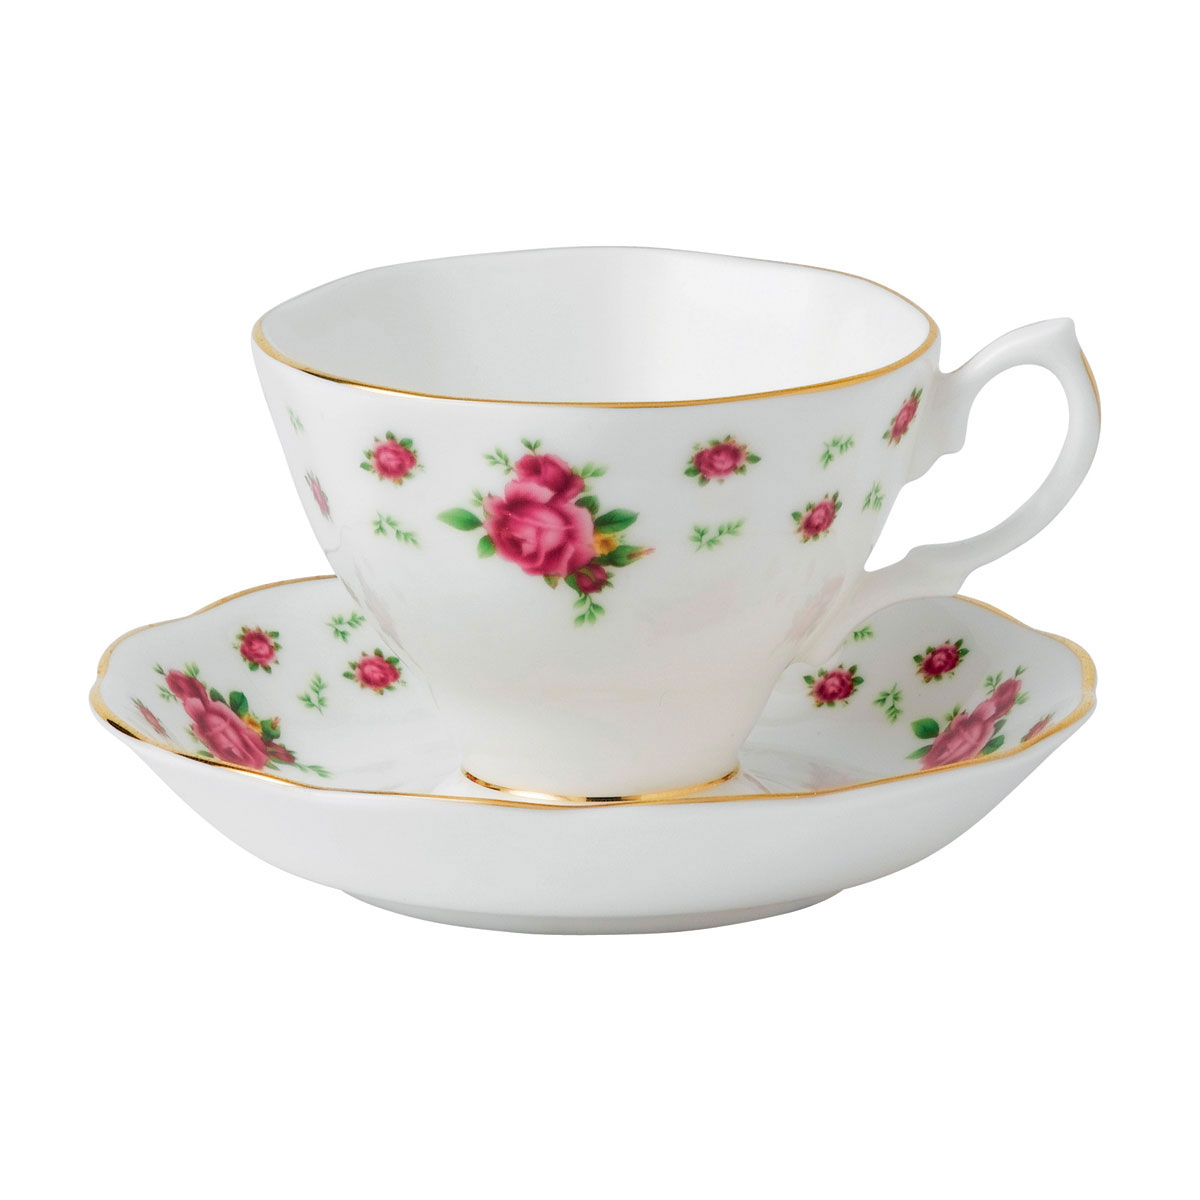 Royal Albert New Country Roses White Teacup and Saucer Set